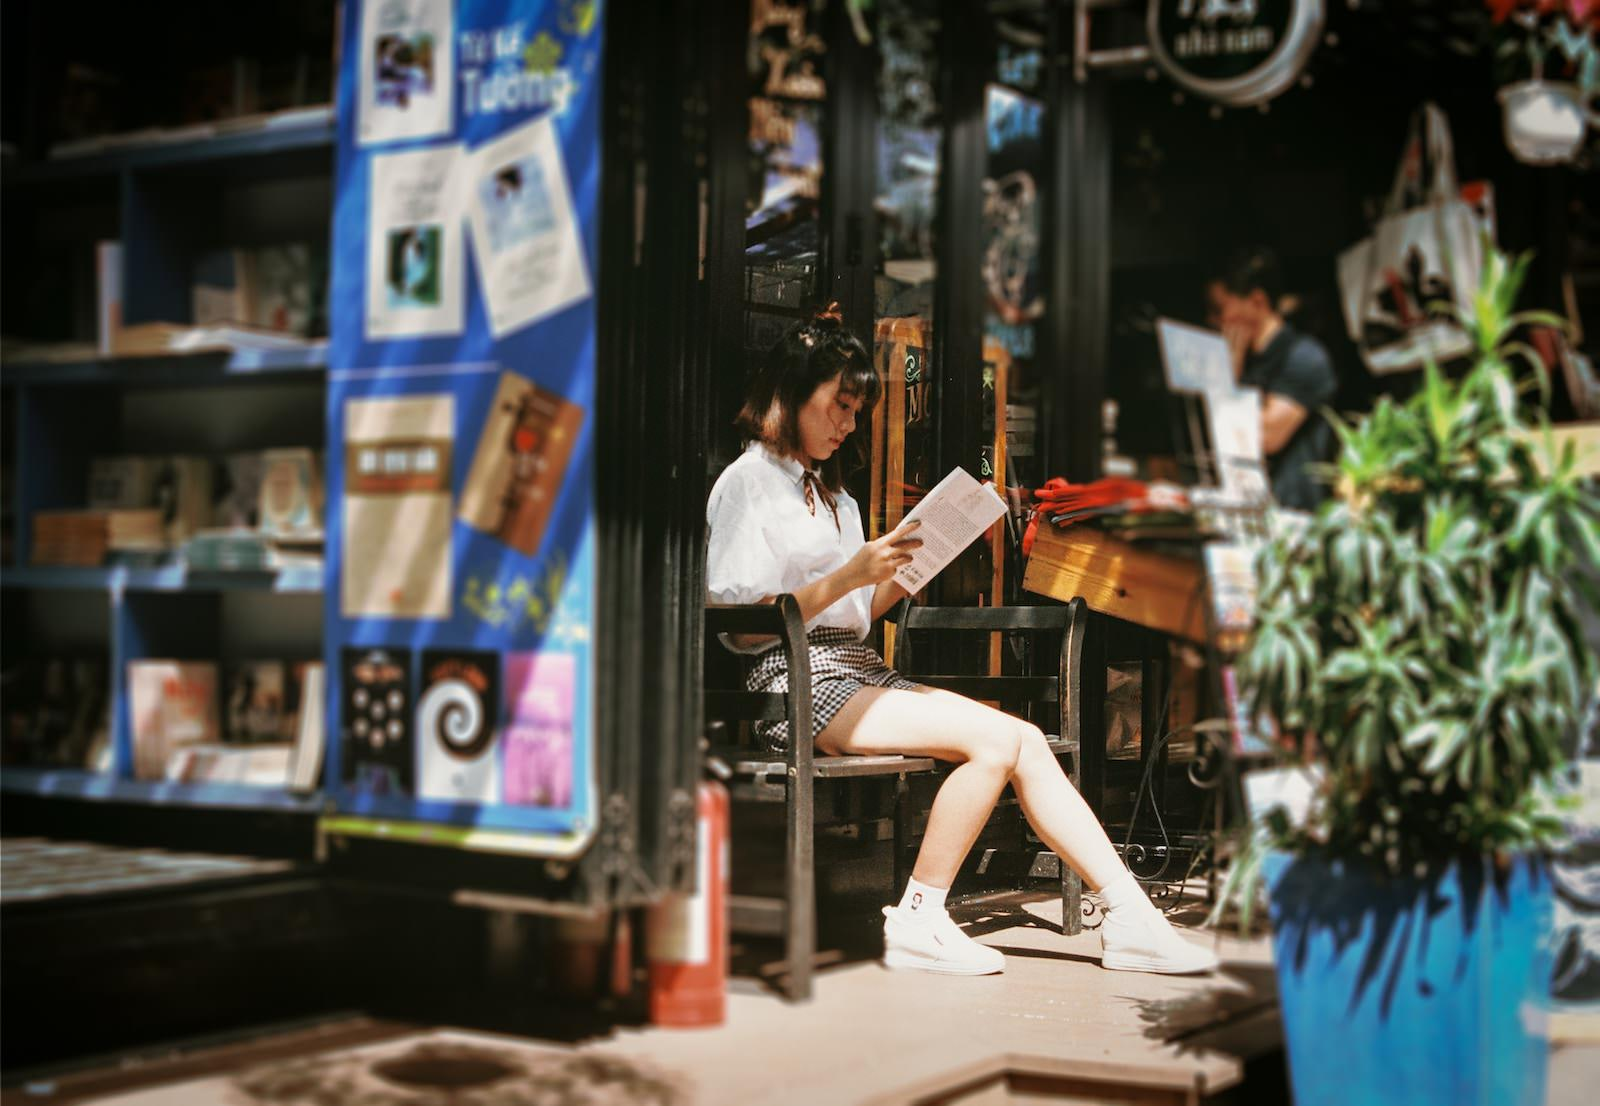 Andrew le 683199 unsplash girl reading a book